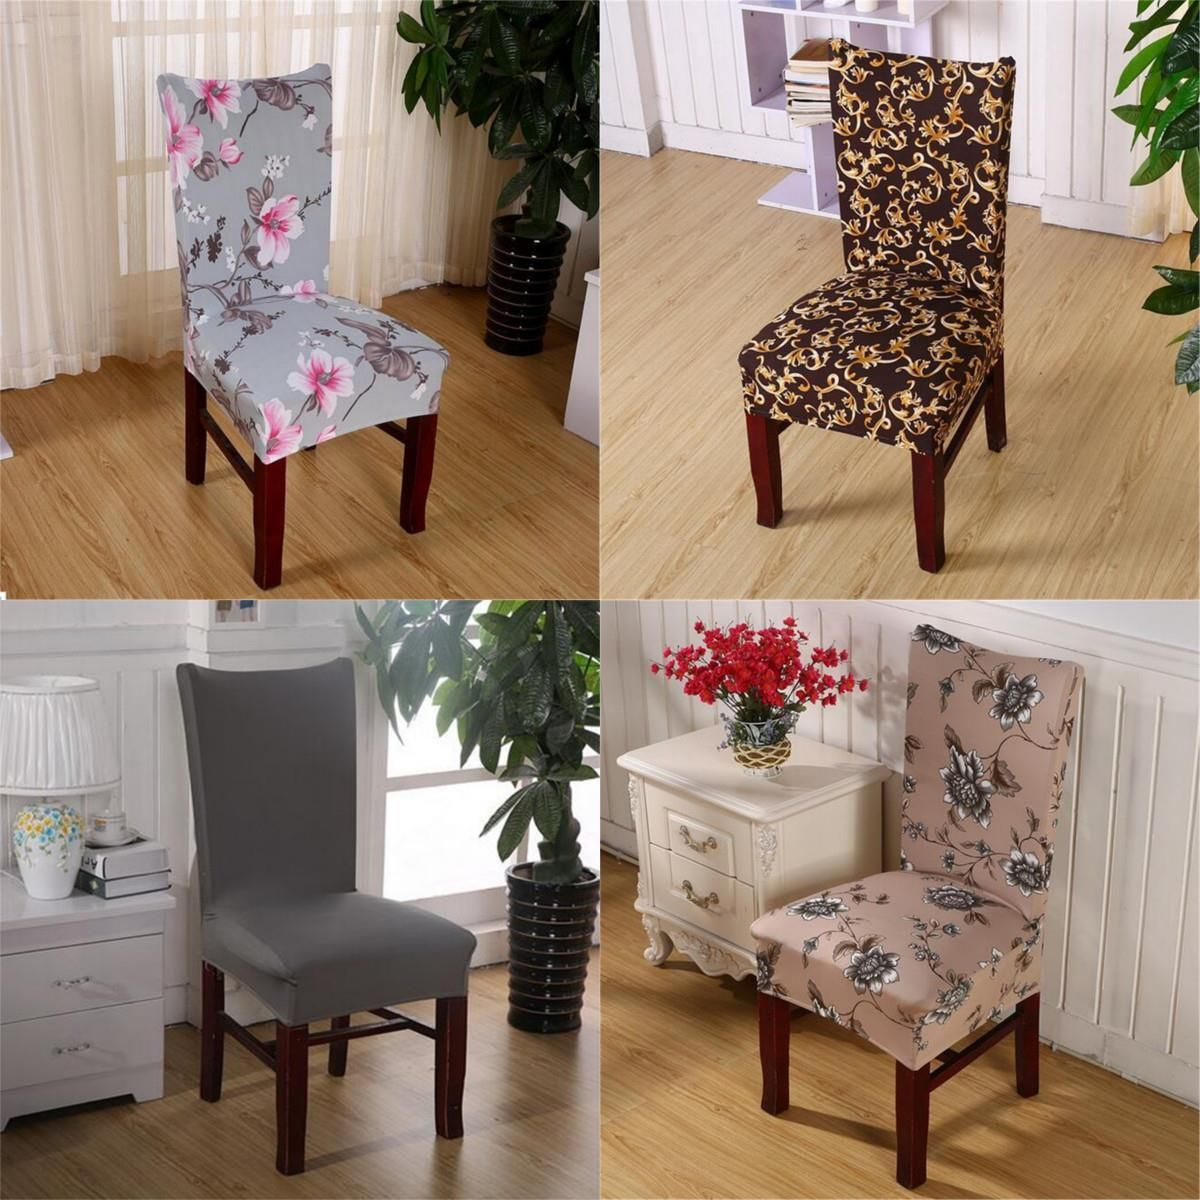 Elastic Stretch Chair Cover Dining Room Polyester Spandex Fabric Adorable Stretch Covers For Dining Room Chairs Decorating Inspiration